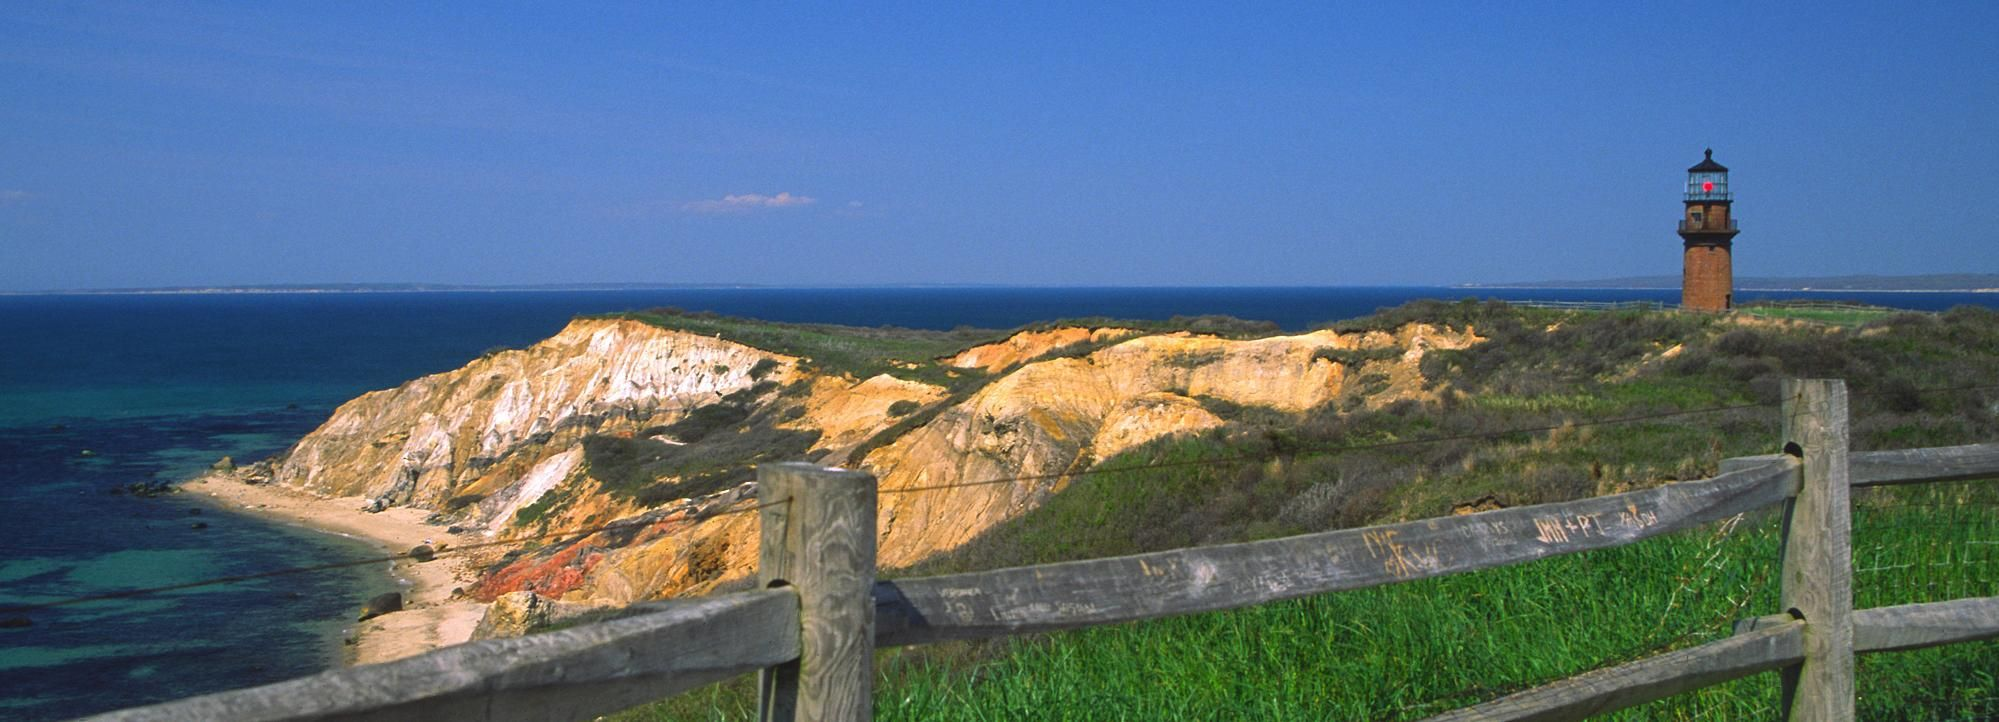 From Boston: Martha's Vineyard with Optional Island Tour